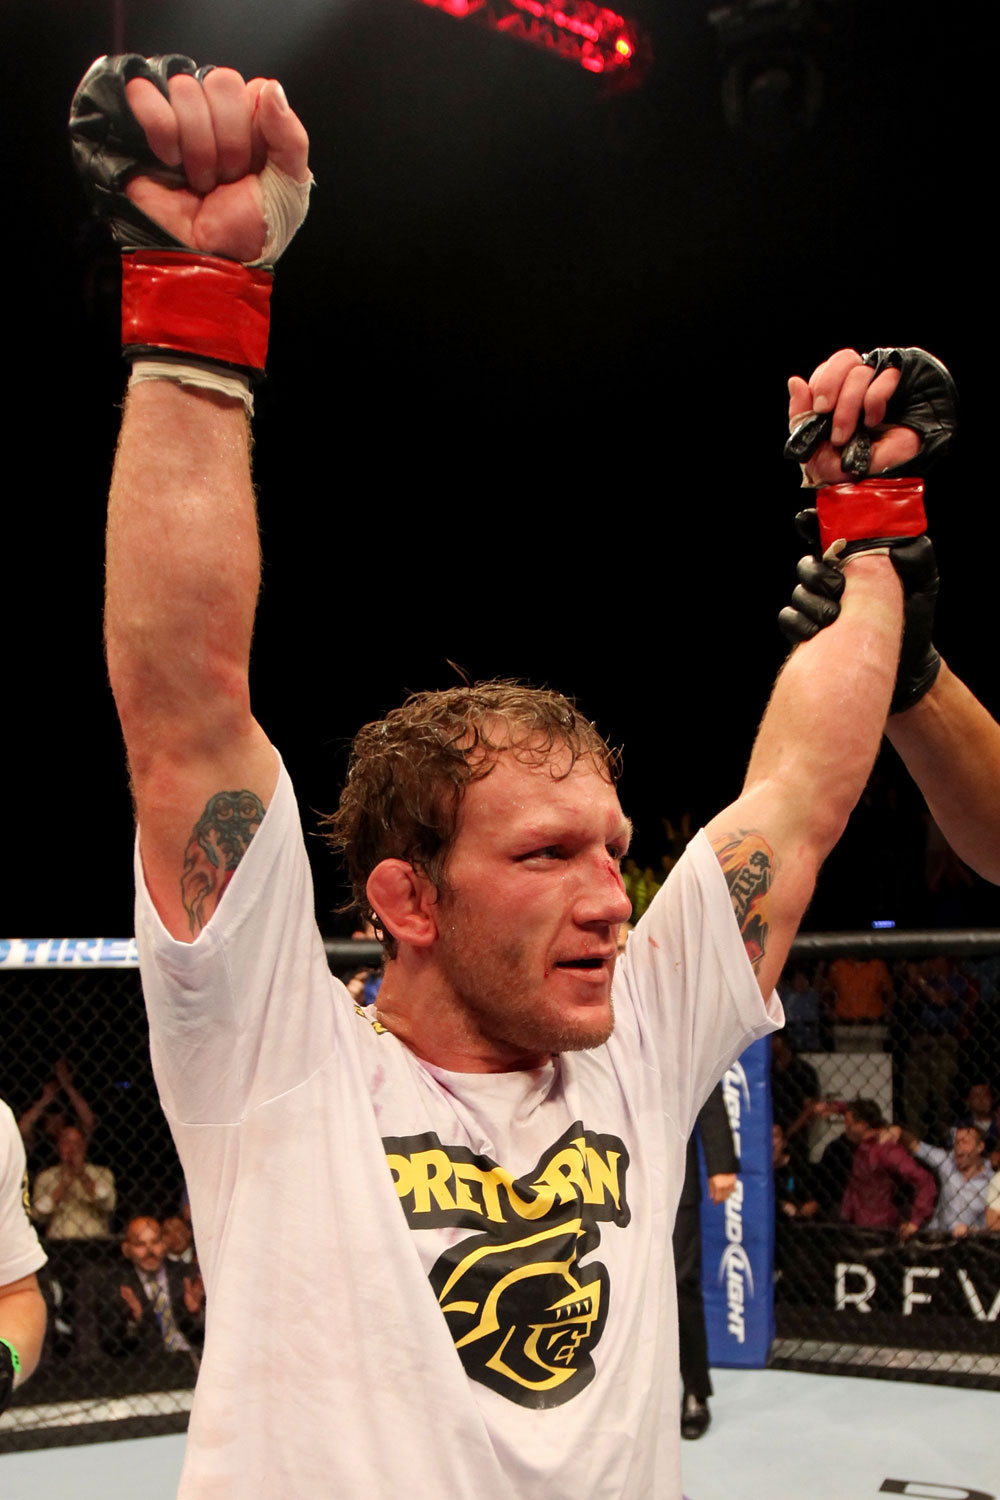 ATLANTIC CITY, NJ - JUNE 22:  Gray Maynard celebrates his win by split decision over Clay Guida (not pictured) in the main event lightweight bout during UFC on FX 4 at Revel Casino on June 22, 2012 in Atlantic City, New Jersey.  (Photo by Nick Laham/Zuffa LLC/Zuffa LLC)